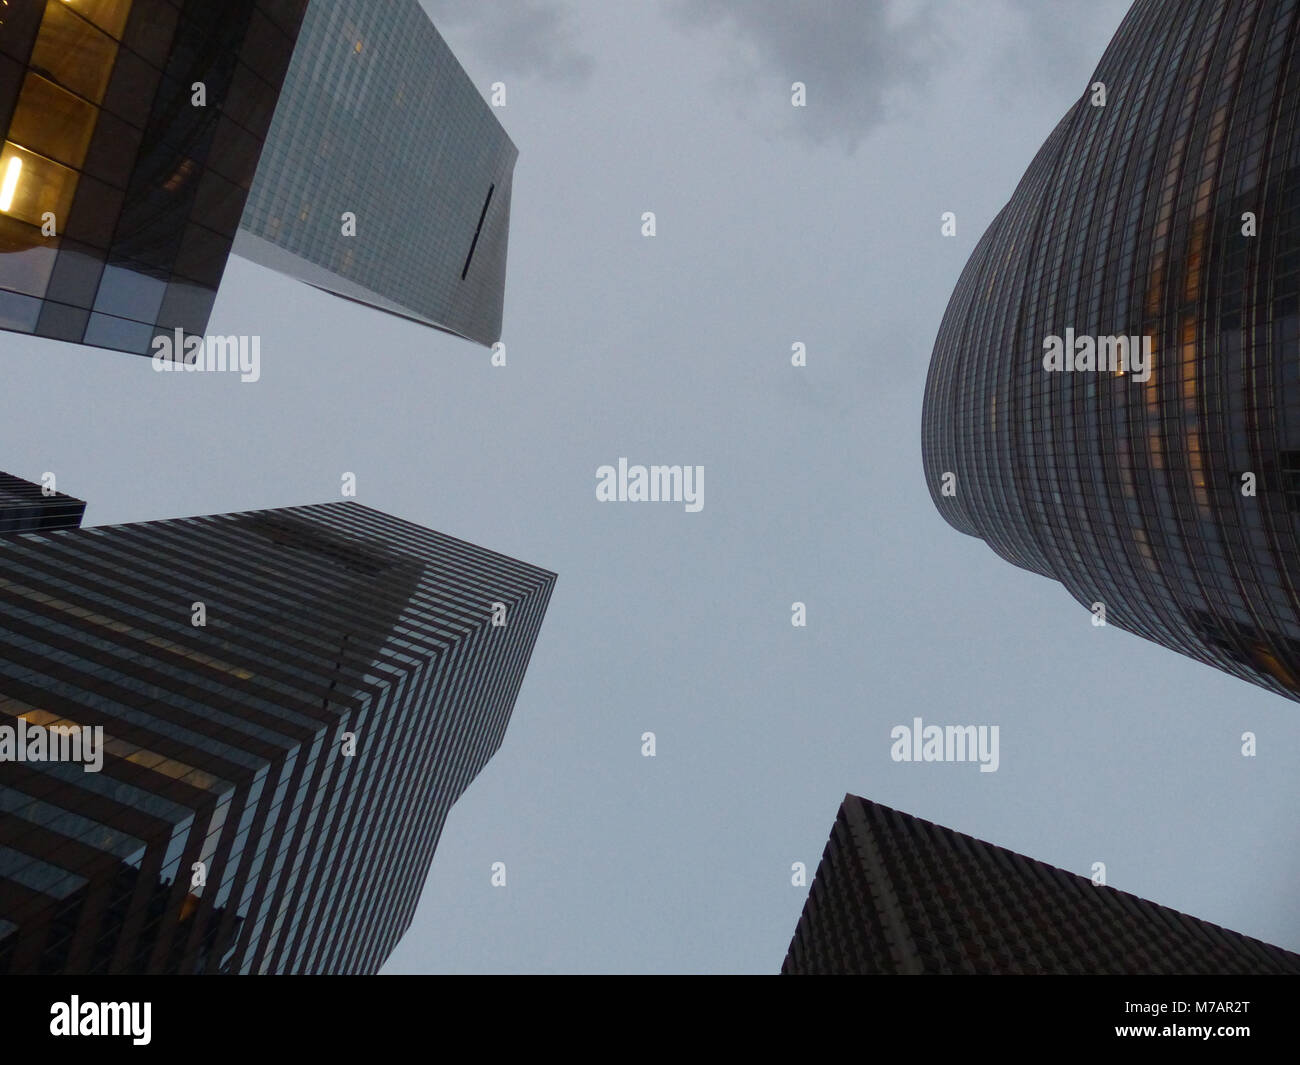 New York skyscrapers at 53Rd and Third, including Citigroup Center designed by Architects William LeMessurier, Hugh - Stock Image